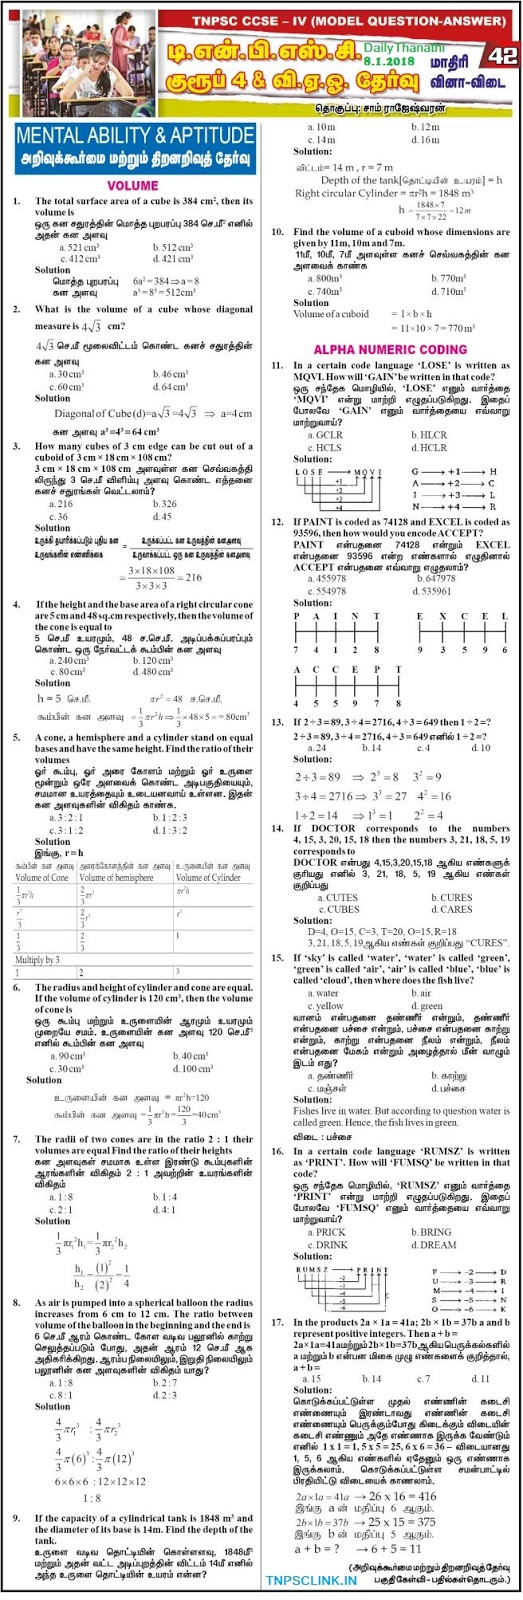 TNPSC Group 4 Mental Ability & Aptitude Questions Tamil (Dinathanthi Jan 8. 2018) Download as PDF